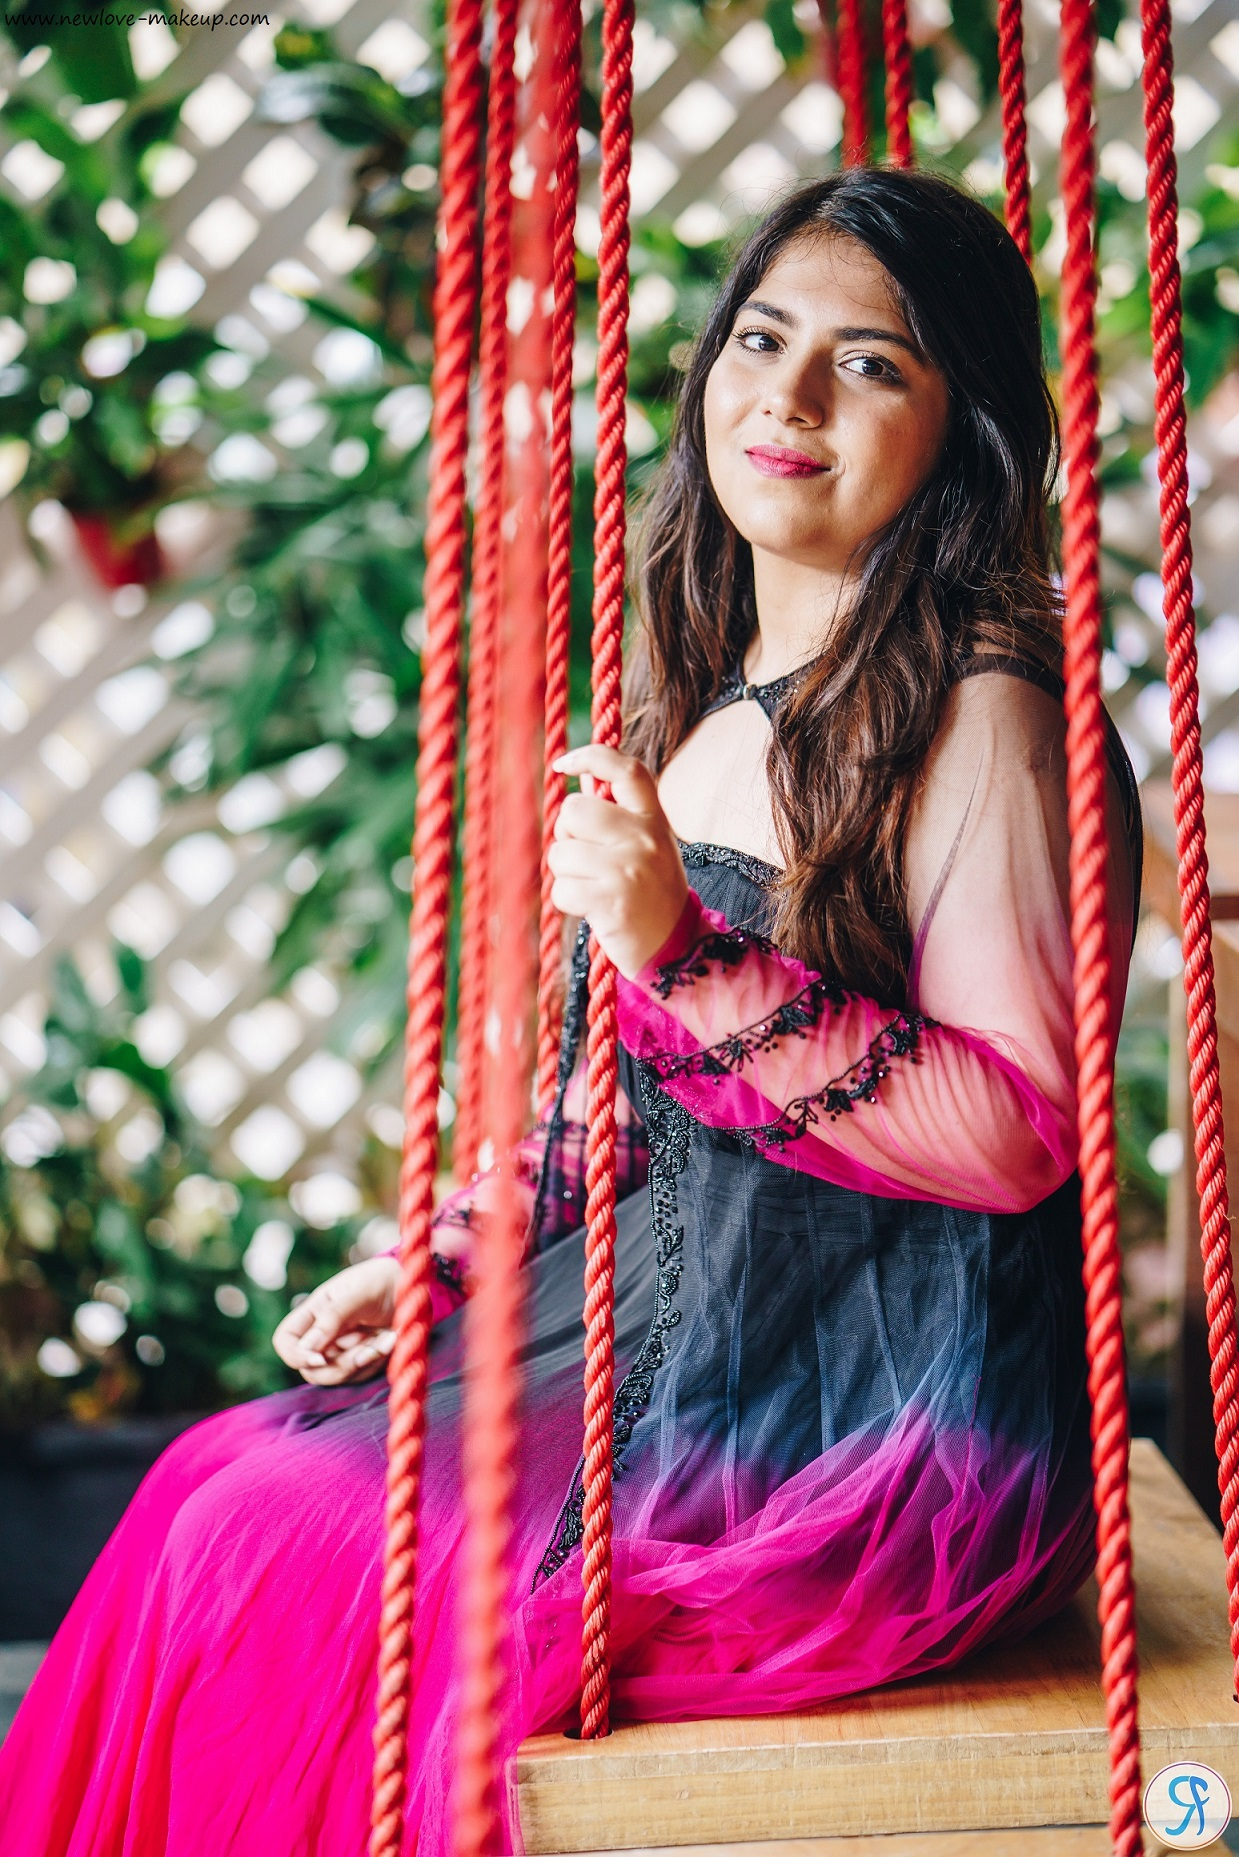 OOTD: Black & Fuchsia Pink Ombre Maxi Dress with Embellished Cape